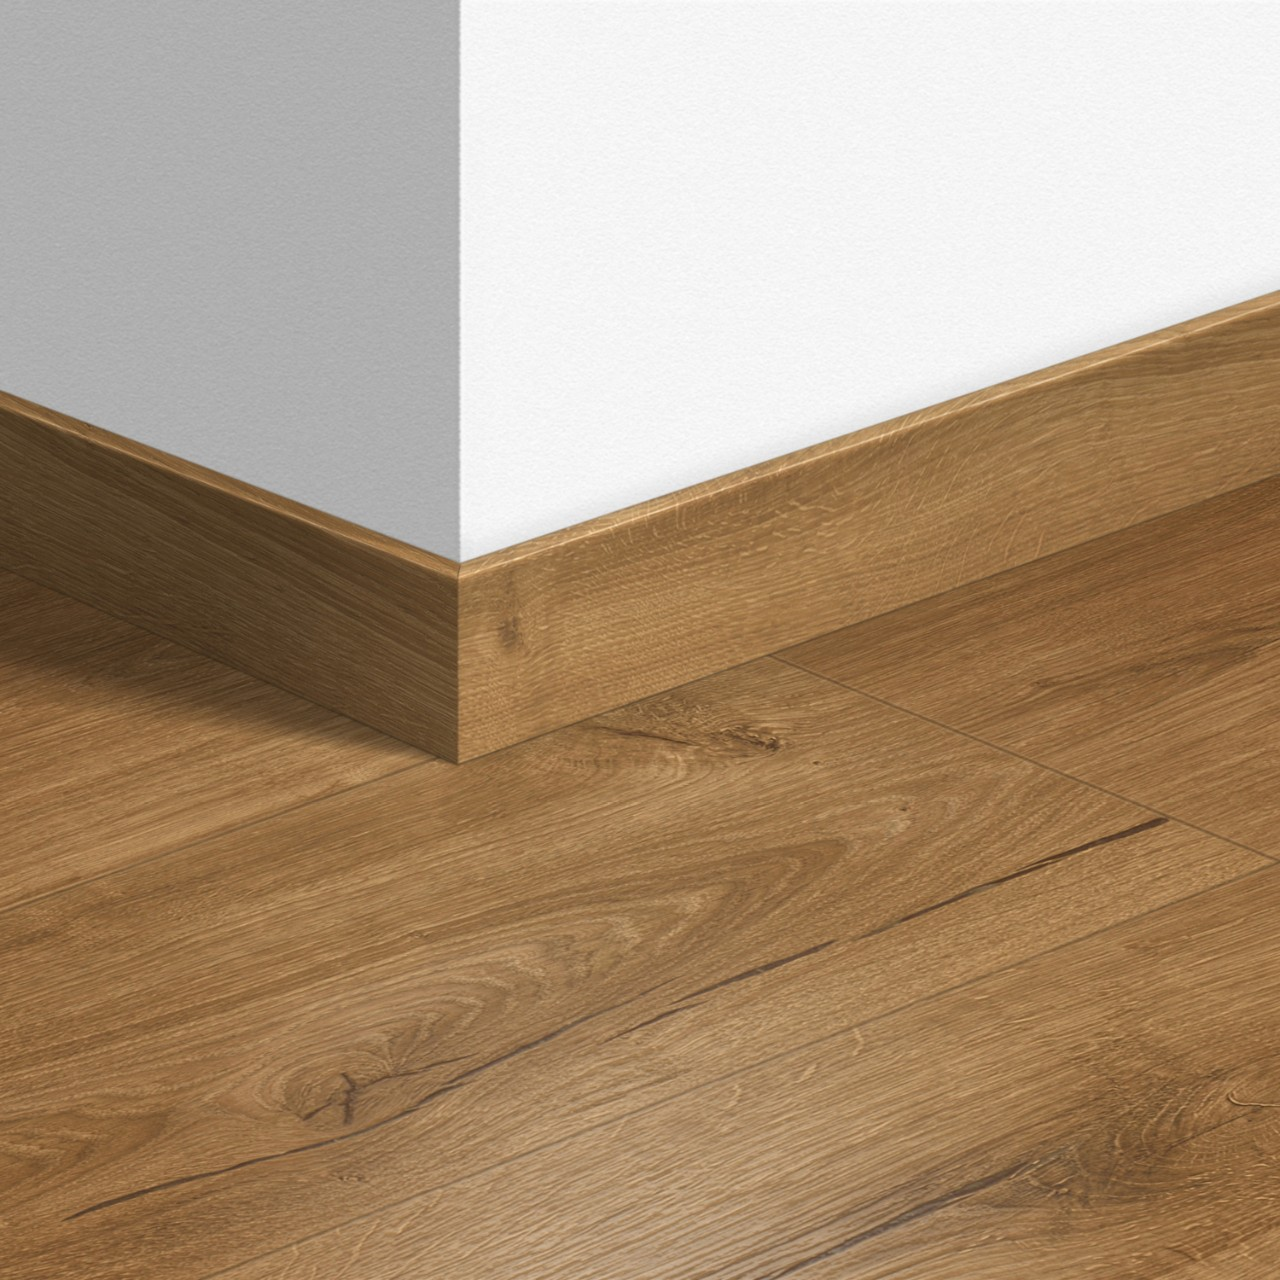 QSSK Laminate Accessories Classic oak natural QSSK01848